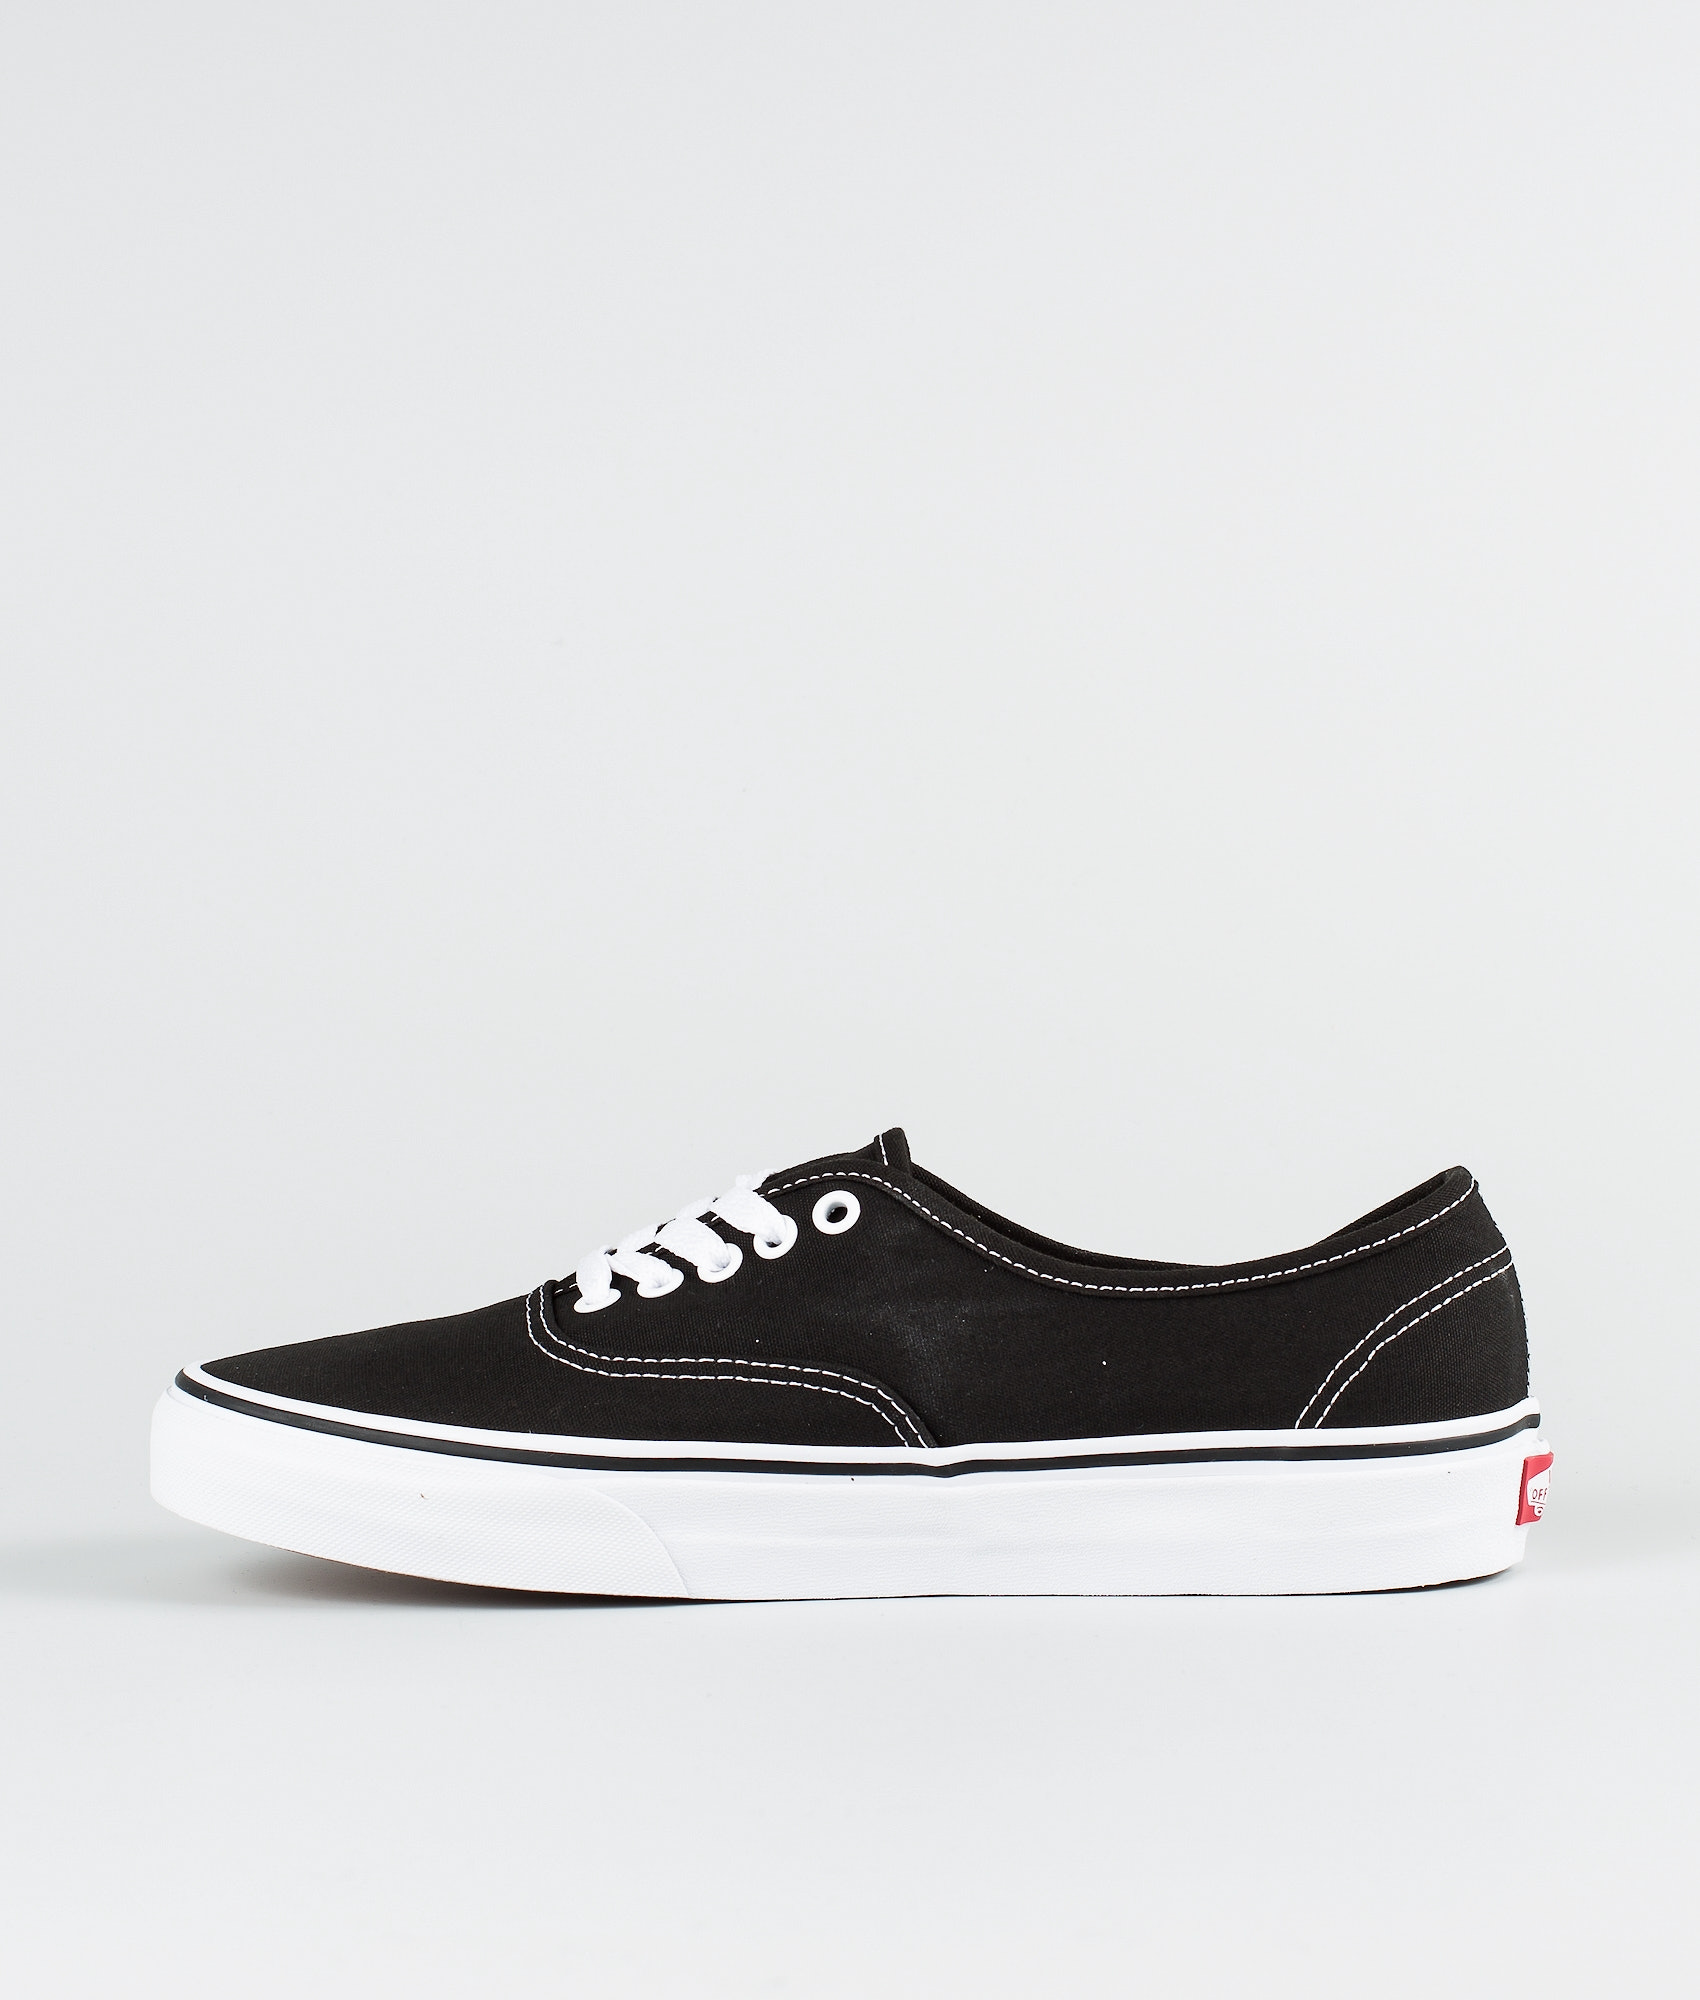 55c2abd171 Vans Authentic Shoes Black - Ridestore.com